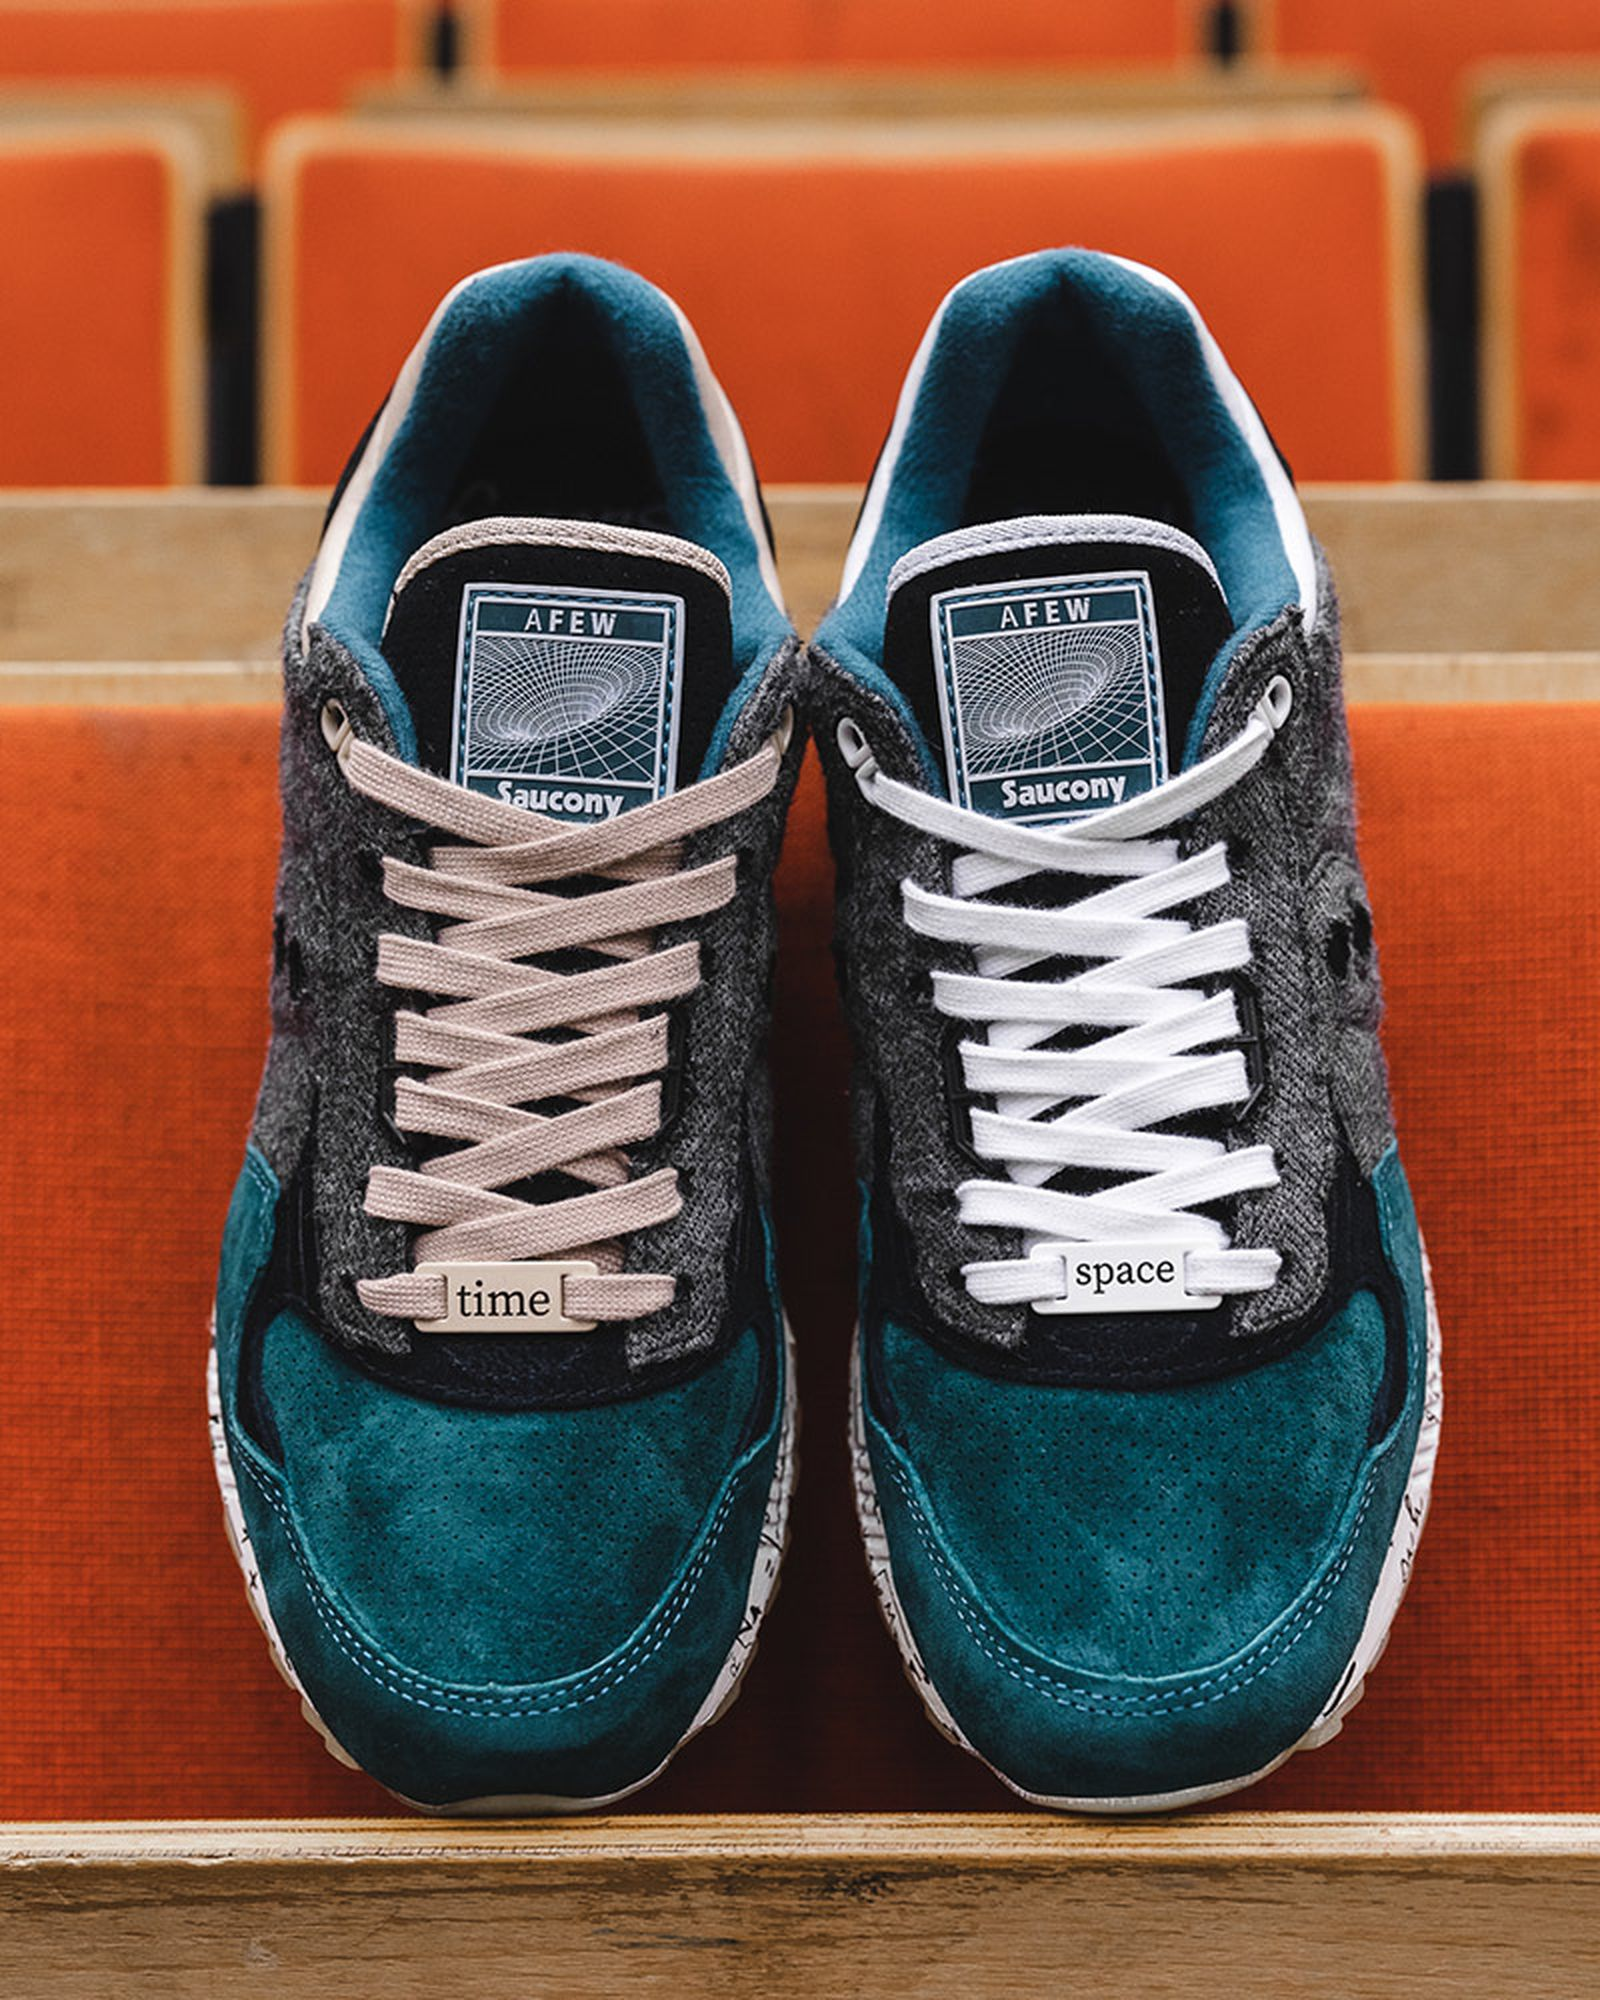 afew-saucony-shadow-5000-time-space-release-date-price-06